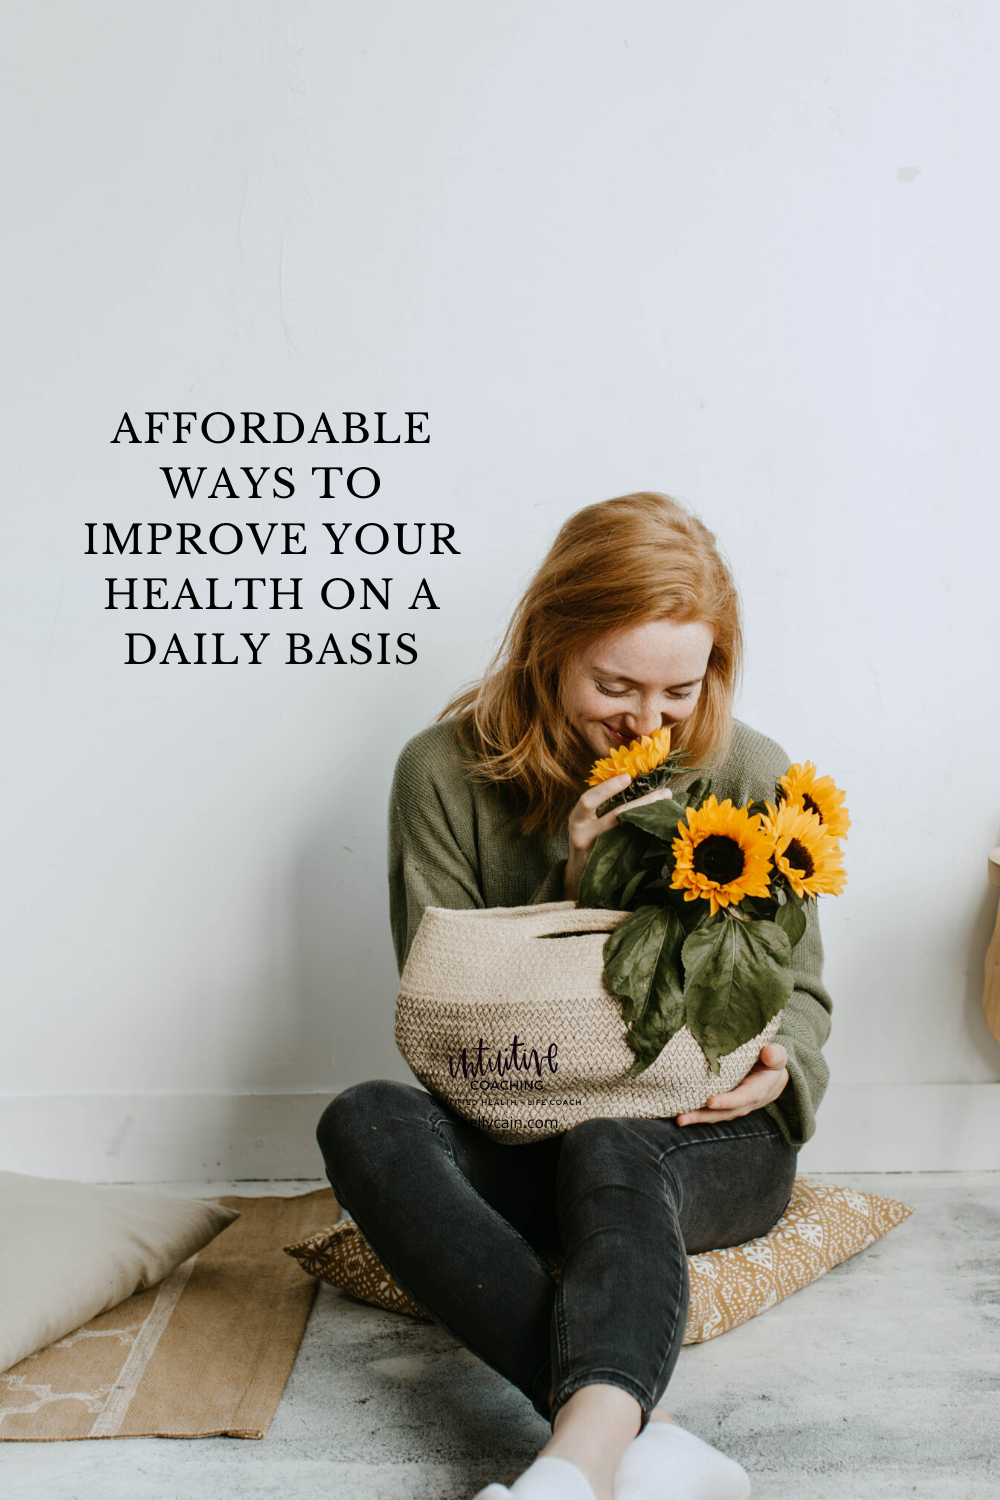 Affordable Ways to Improve Your Health on a Daily Basis